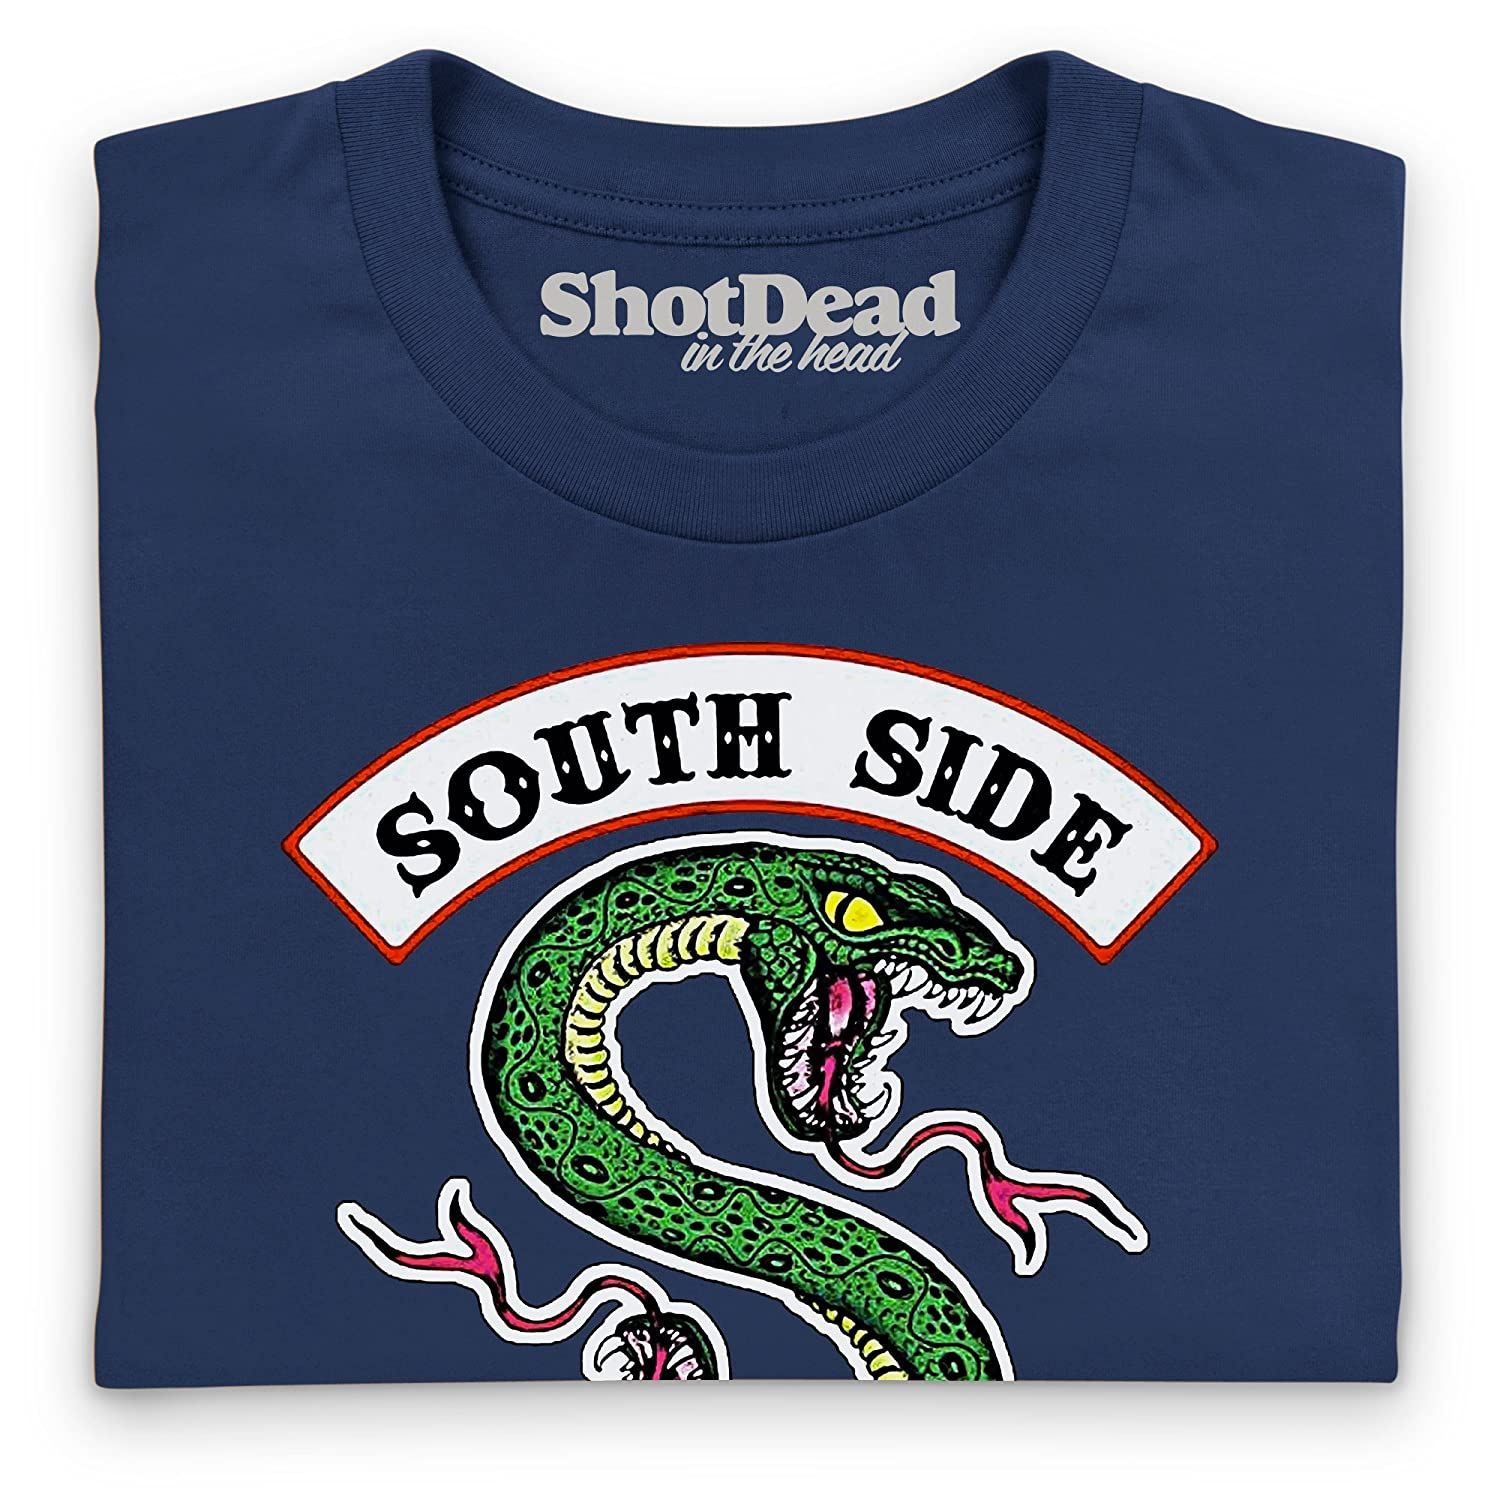 Inspired by Riverdale - South Side Serpents Camiseta, Para mujer: Amazon.es: Ropa y accesorios